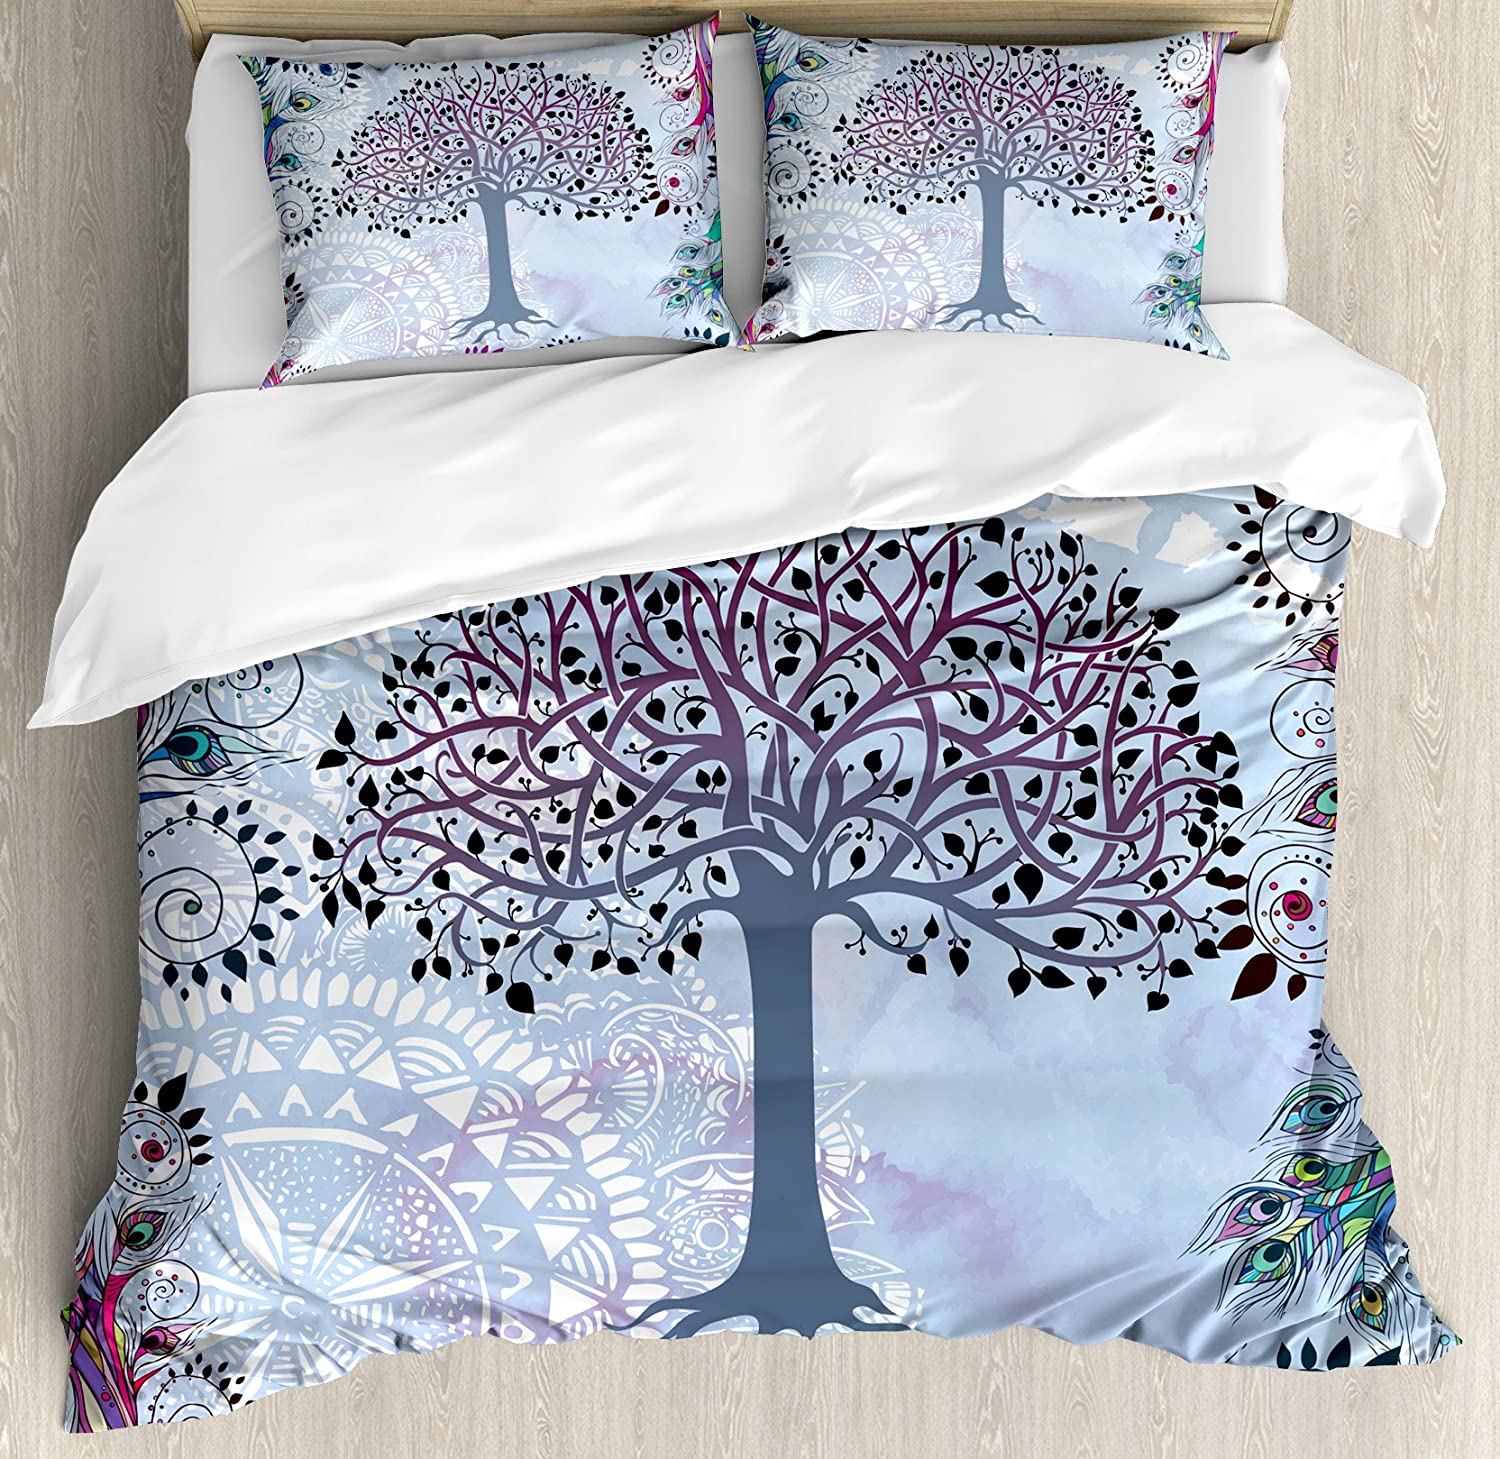 Ambesonne Nature Duvet Cover Set, Tree of Life Motif with Peacock Feathers Tribal Vintage Primitive Nature Illustration, Decorative 3 Piece Bedding Set with 2 Pillow Shams, Queen Size, Magenta Blue